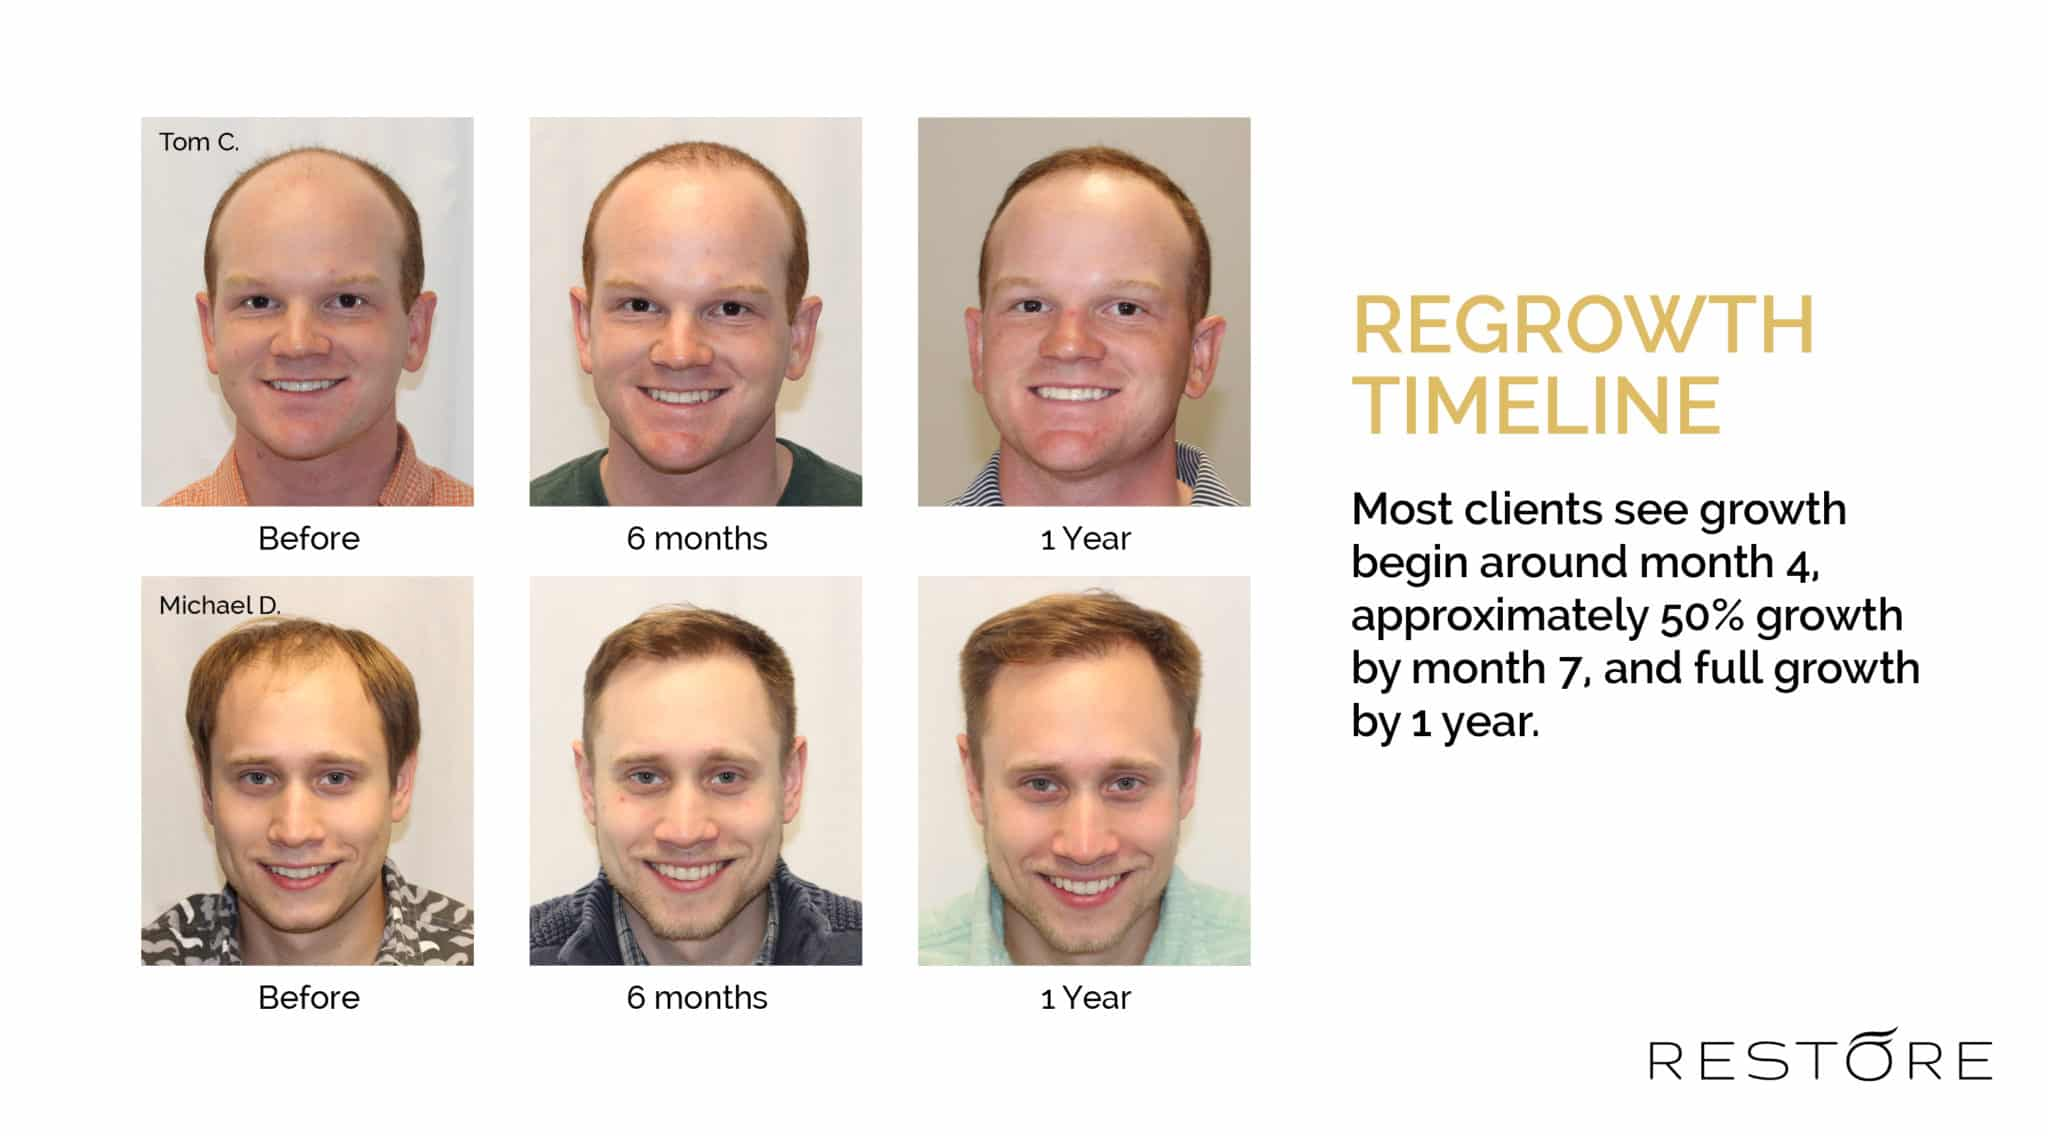 Regrowth Timeline - Most clients see growth begin around month 4, approximately 50% growth by month 7, and full growth by 1 year.